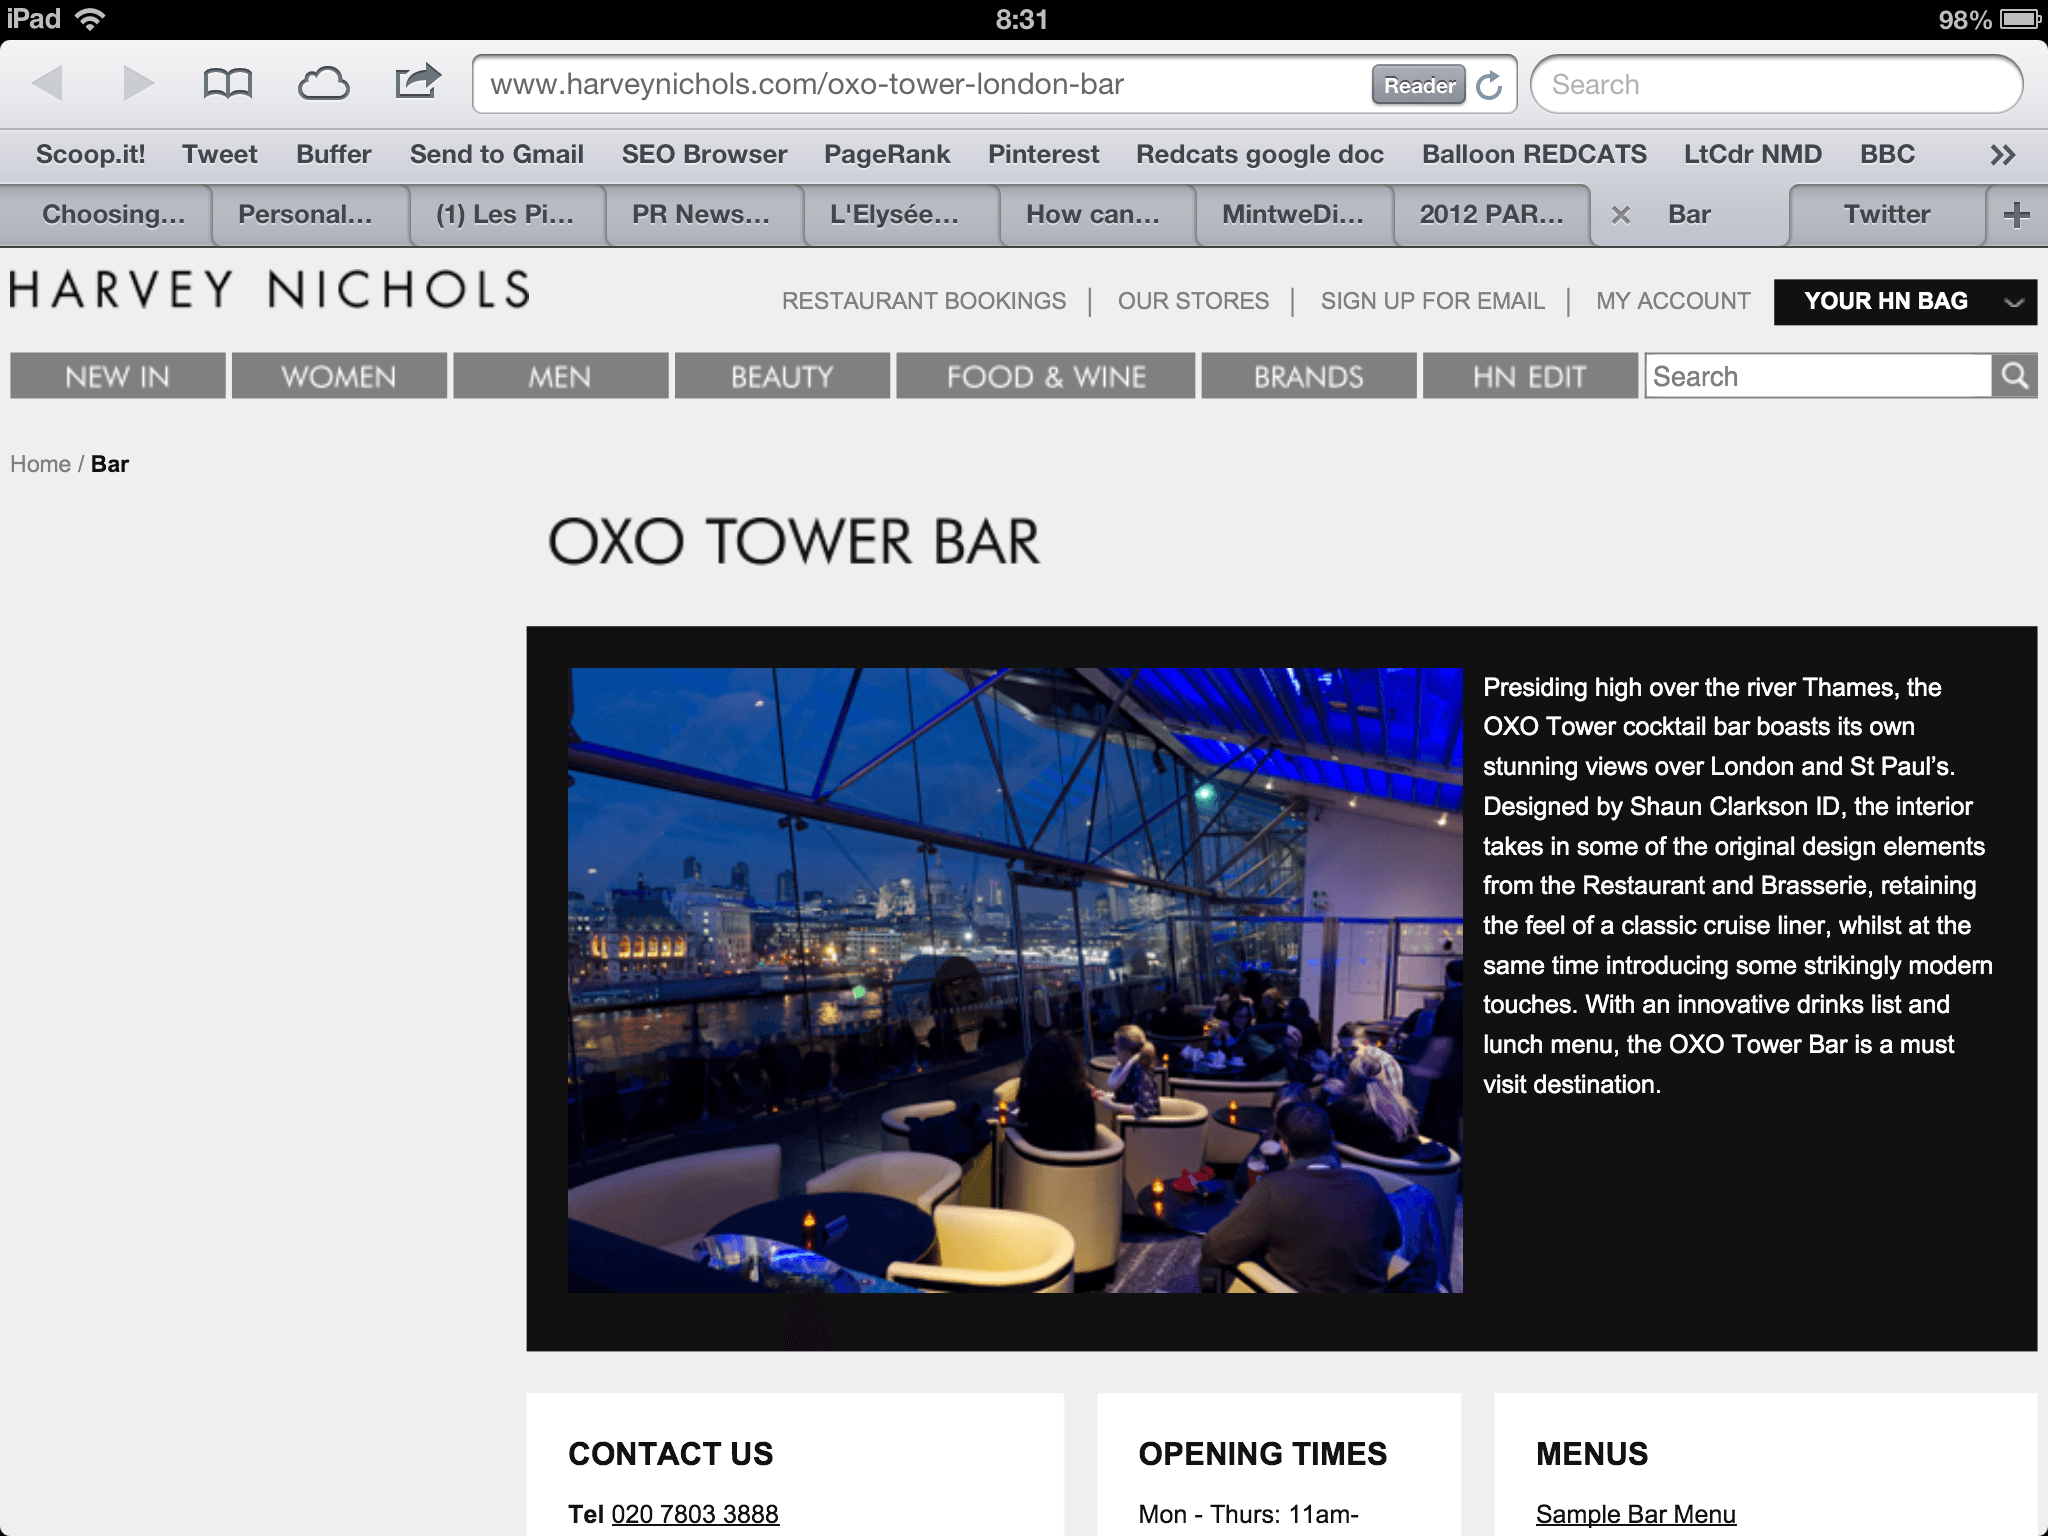 Oxo Tower Bar website, Myndset Digital Marketing and Brand Strategy by Minter Dial